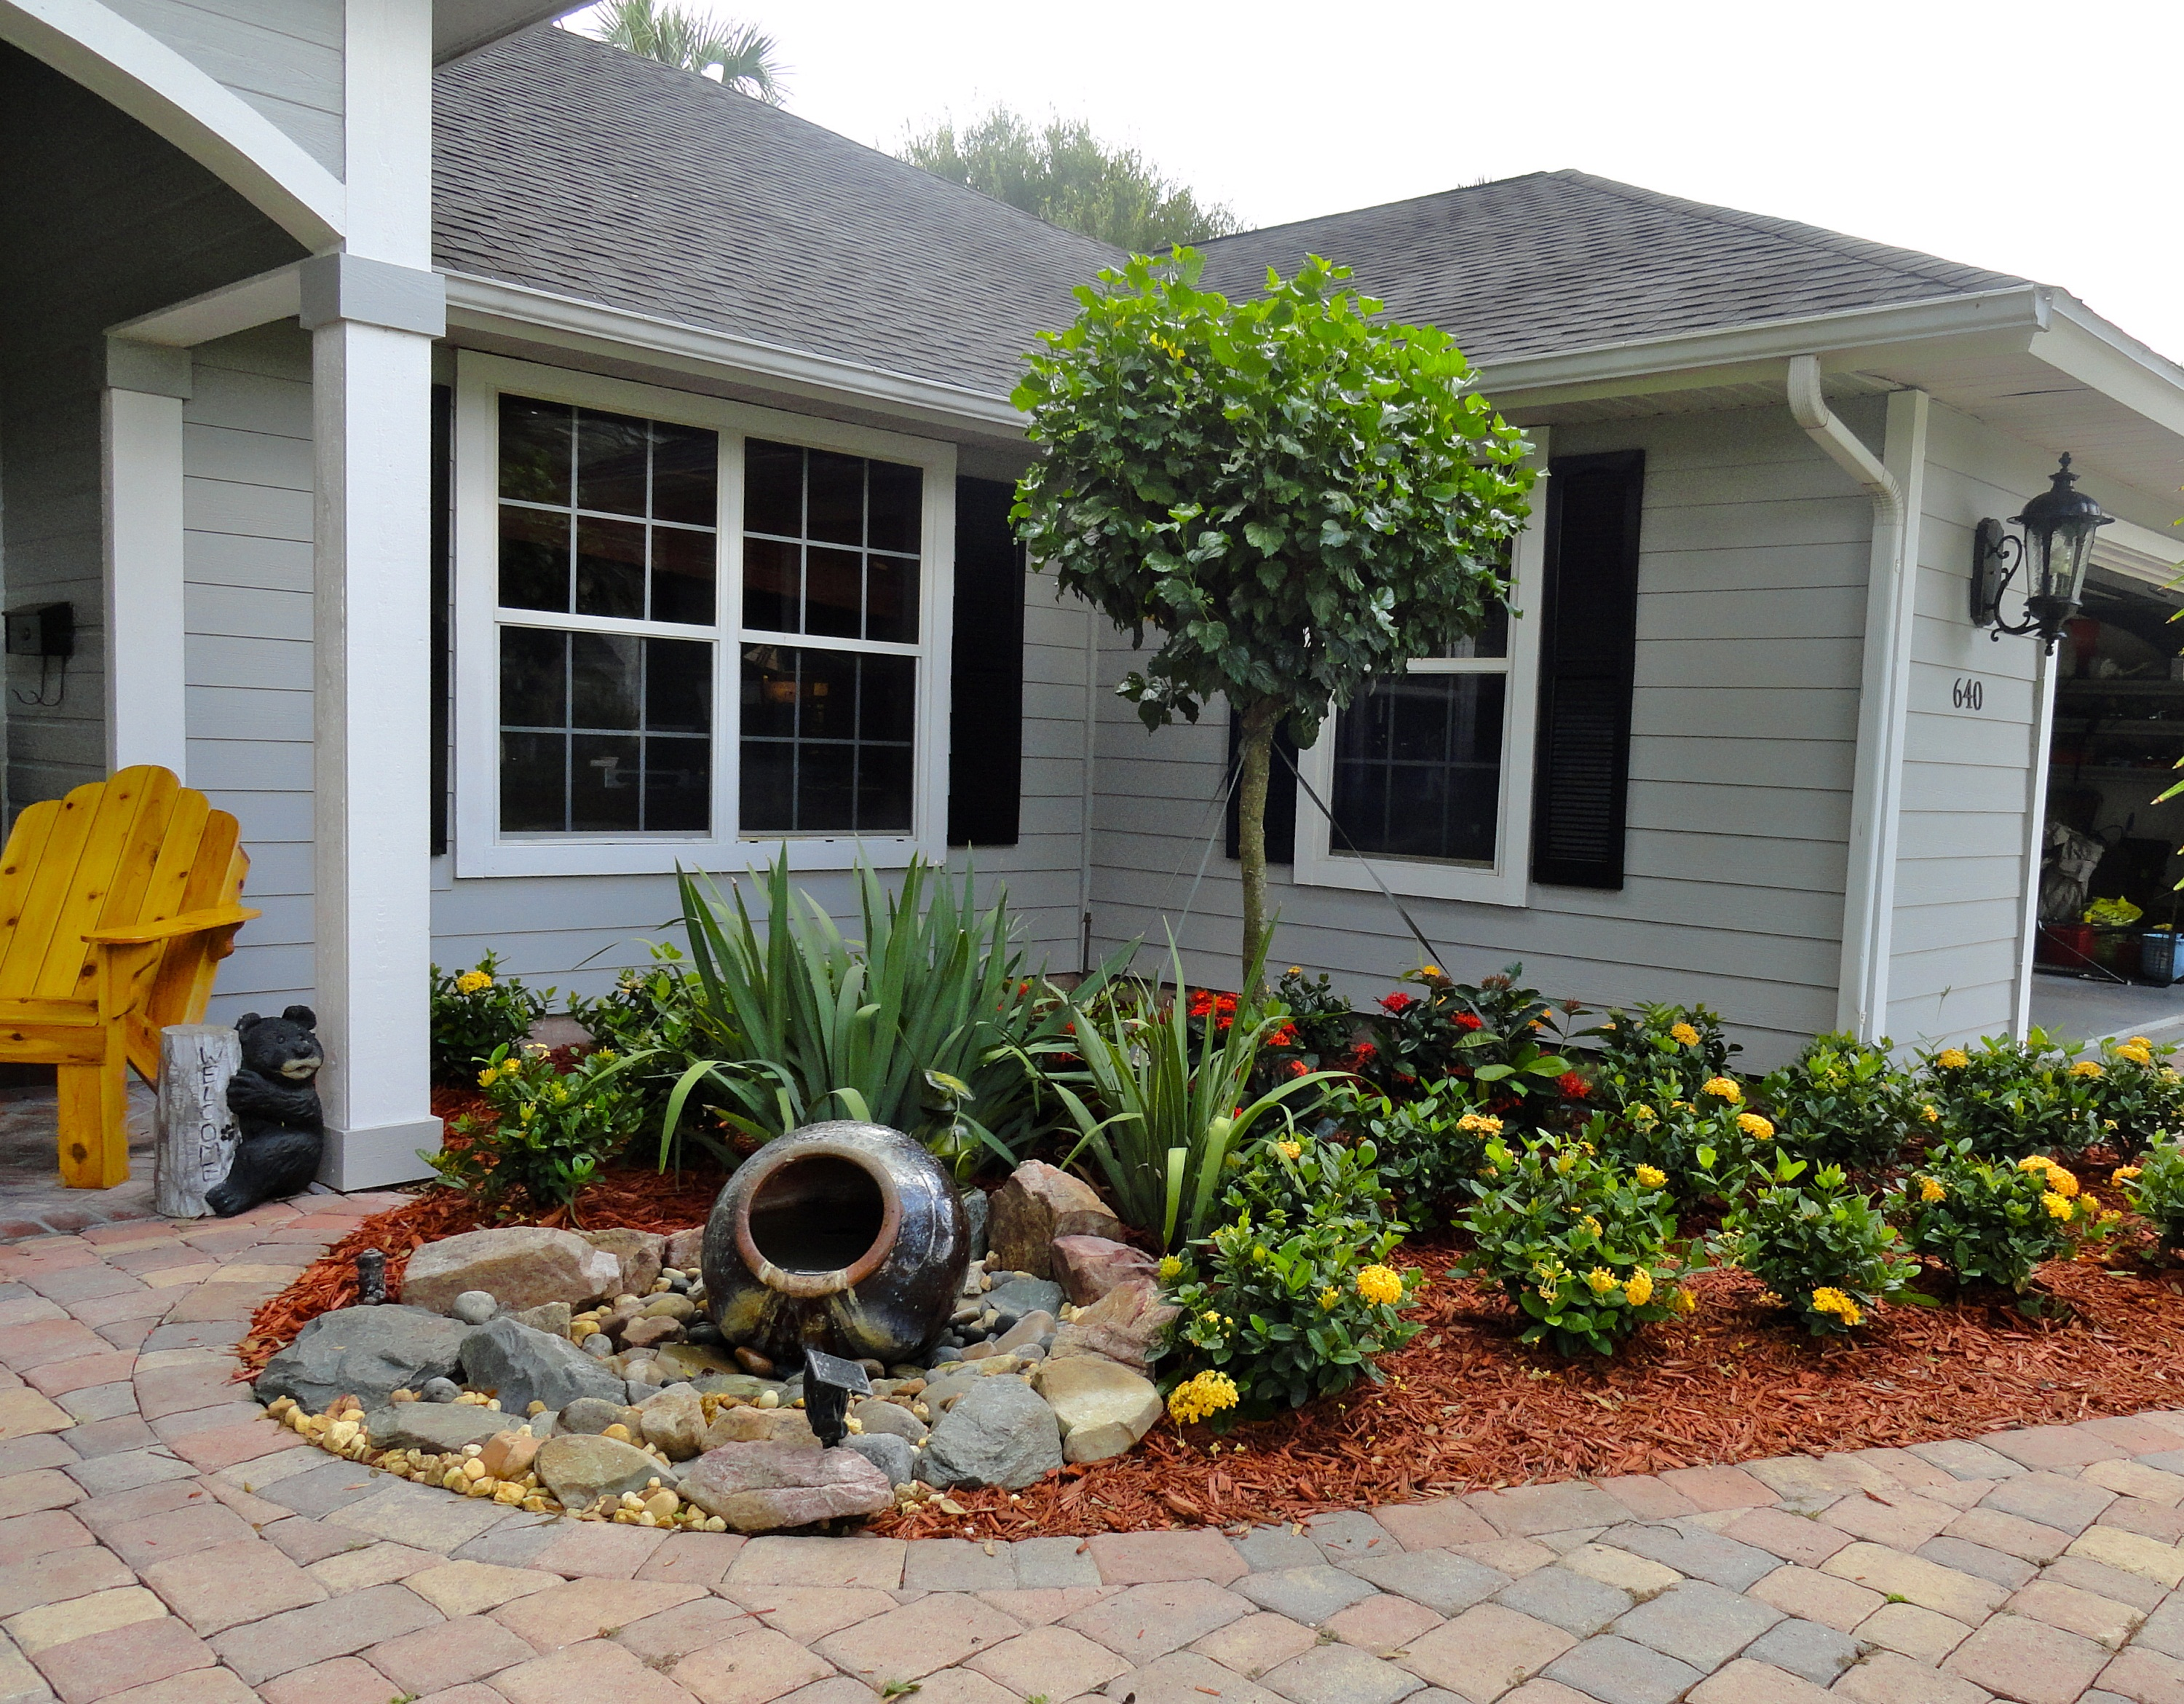 Front yard flower garden ideas - Minimalist Garden With Low Growing Flower And Tree And Natural Stone With Front Yard Fountain Aside